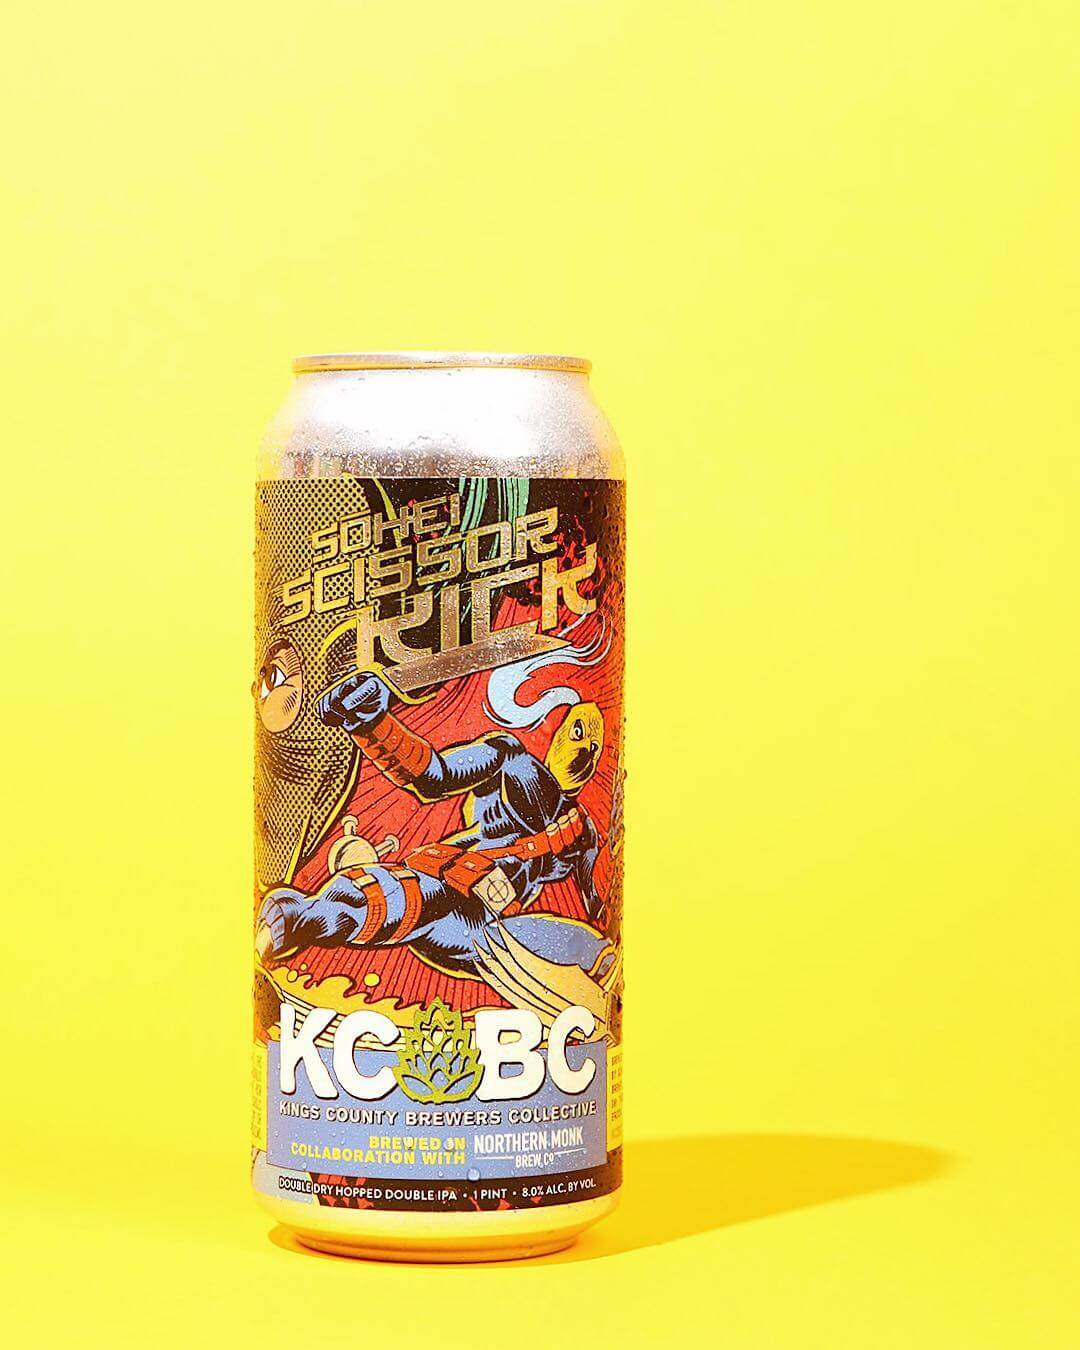 KCBC / Northern Monk — Sohei Scissor Kick